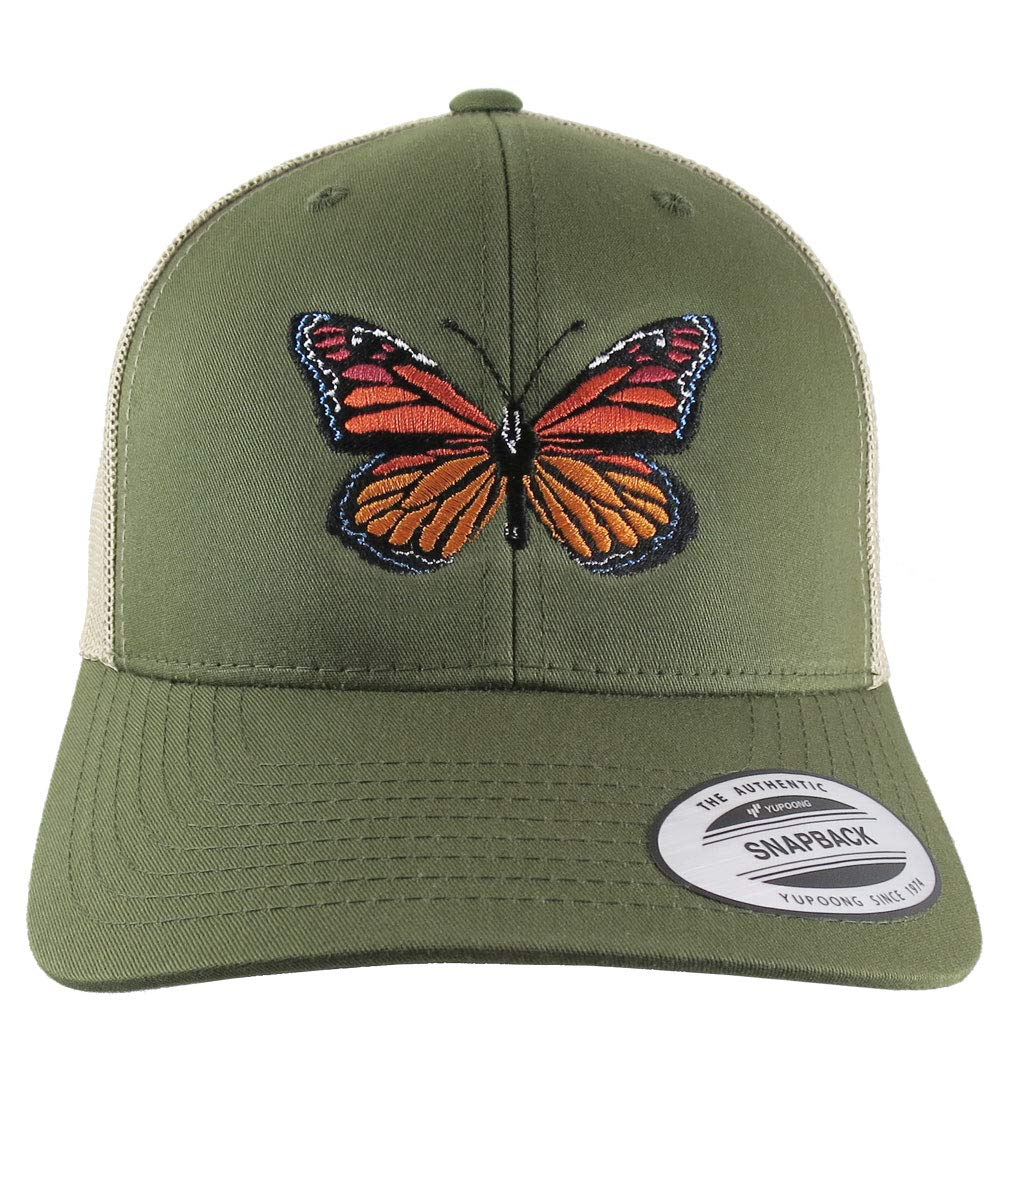 79d88ae57e0 Amazon.com  Monarch Butterfly Embroidery on an Adjustable Olive Green and  Tan Yupoong Structured Classic Trucker Style Snapback Ball Cap  Handmade